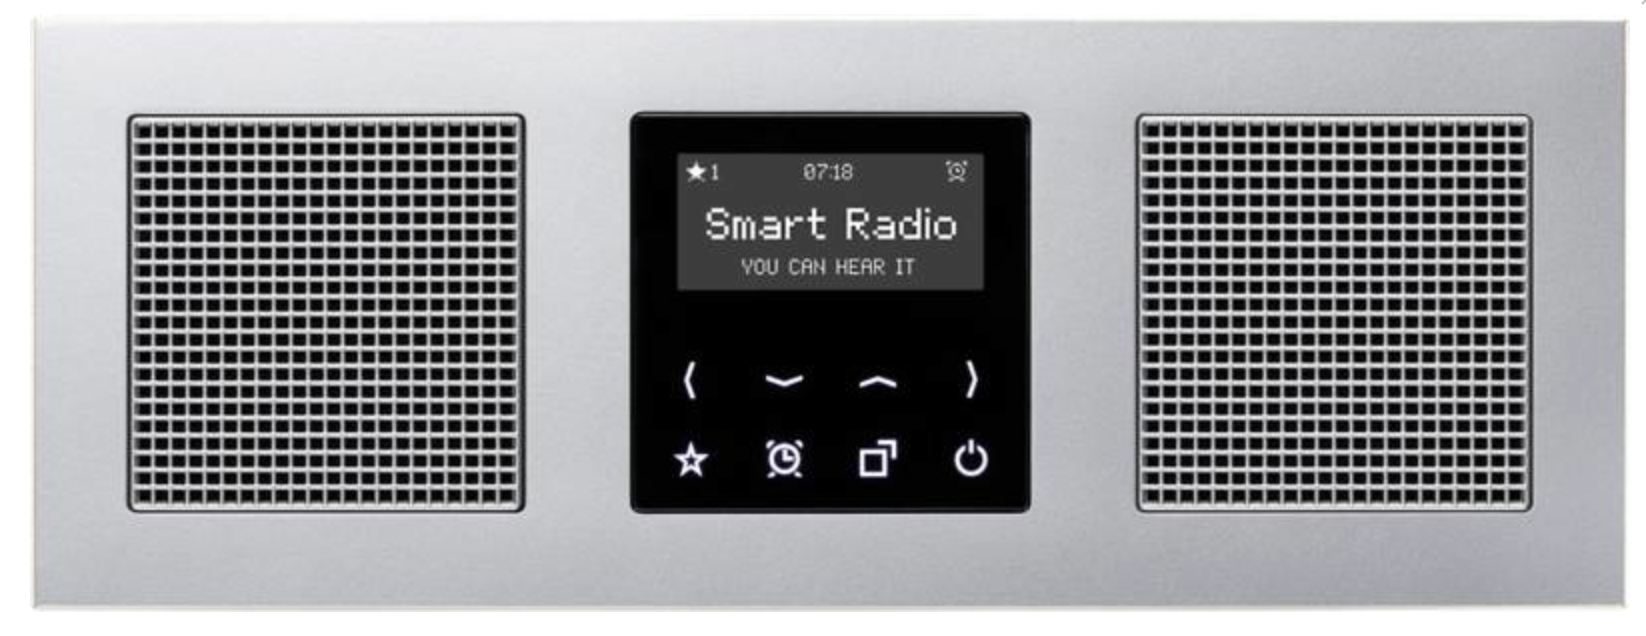 JUNG Smart radio, Technology for Hotel,  Door communication, Intelligent Building & lighting control, Touch control, design switches, Home Control System, Home Automation, Luxury Home, for Interiors and Architectures projects, Smart Home, HomeAutomation